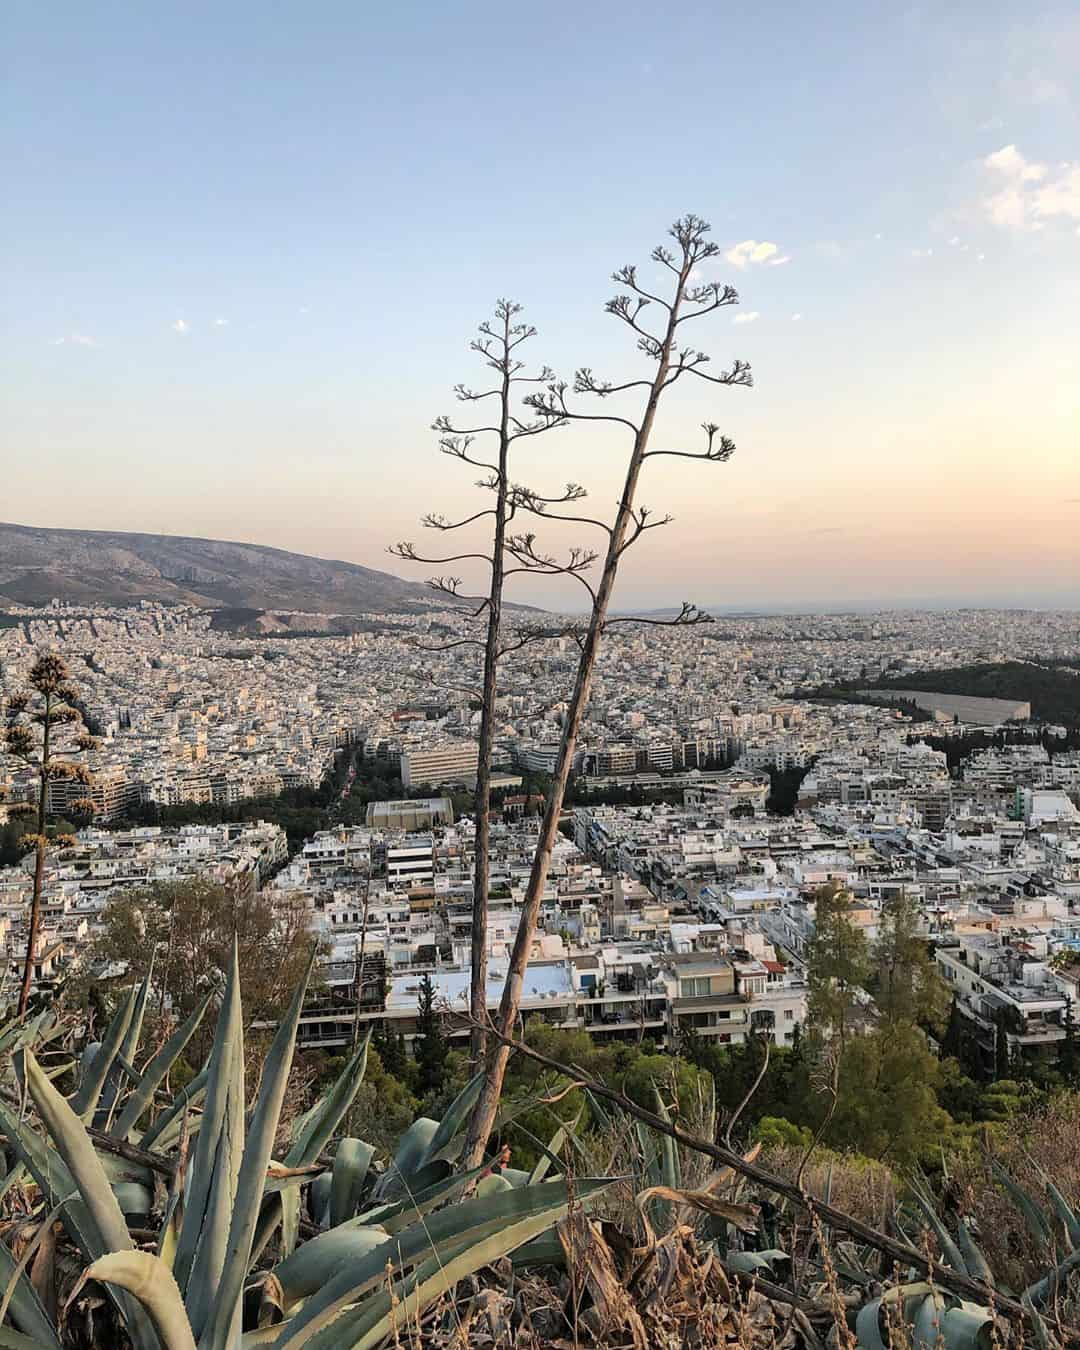 Greece Itinerary: The view from the top of Mount Lycabettus, Athens